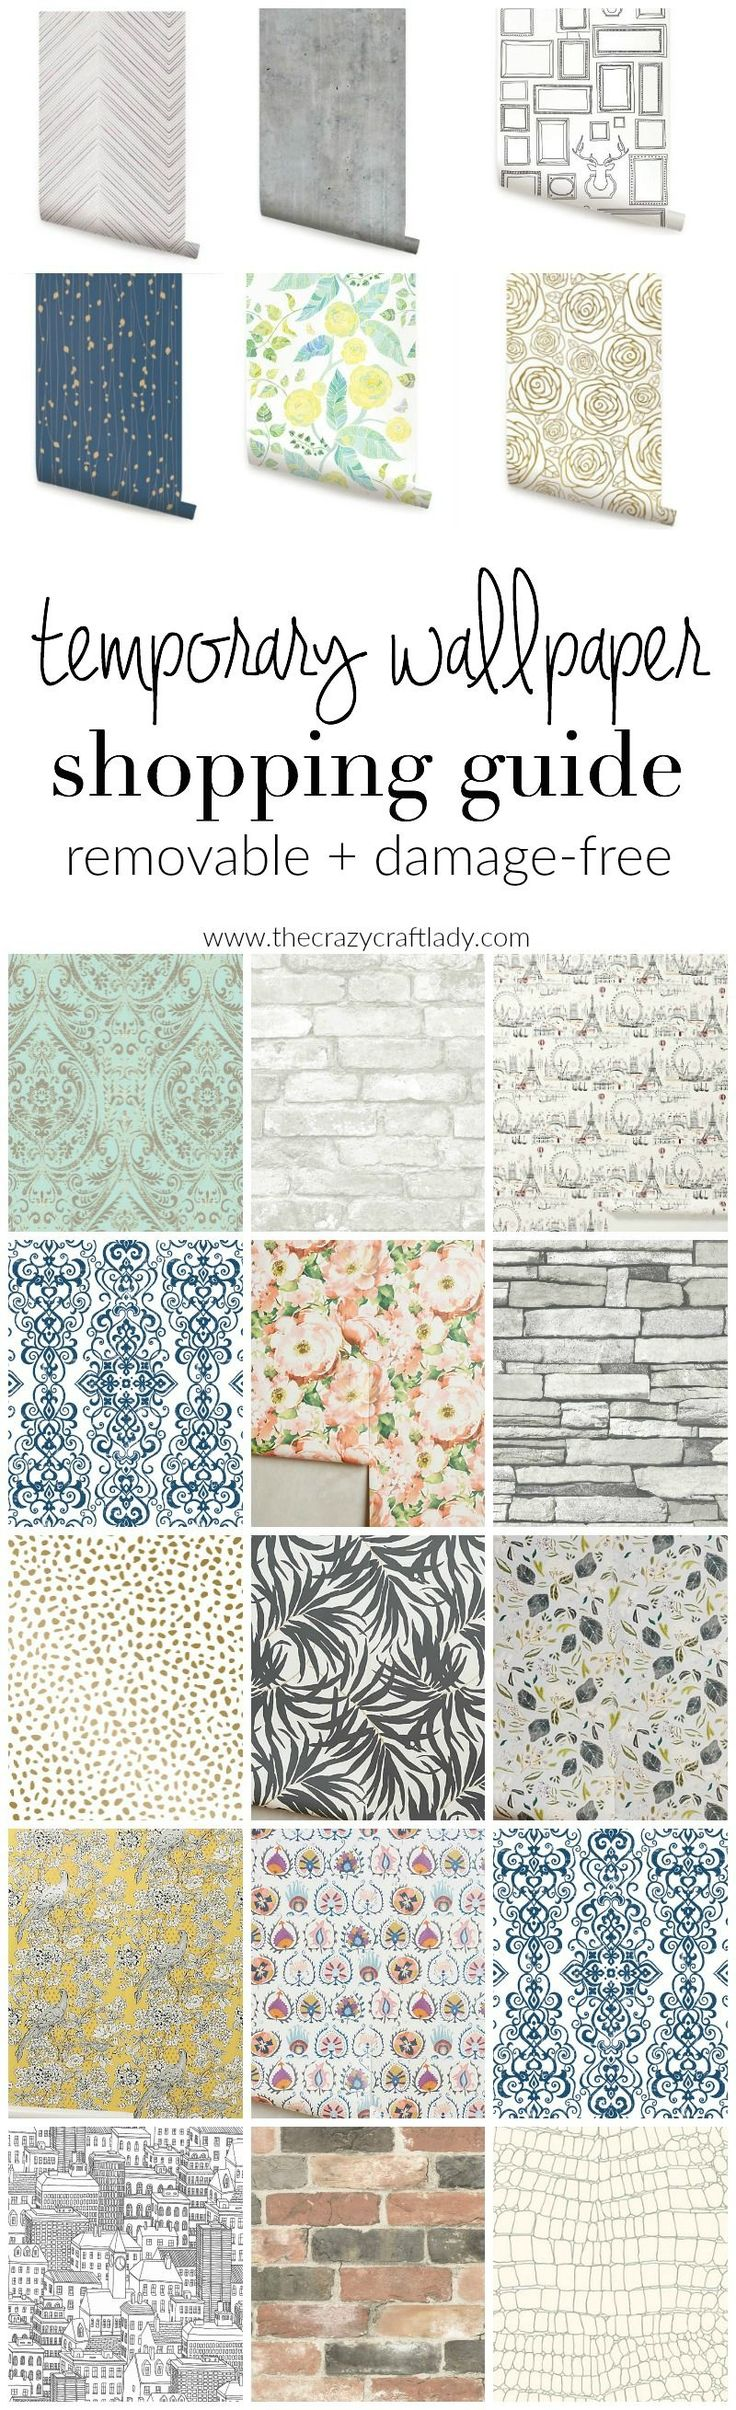 Temporary Wallpaper Shopping Guide - Peel and stick wallpaper comes in a variety…